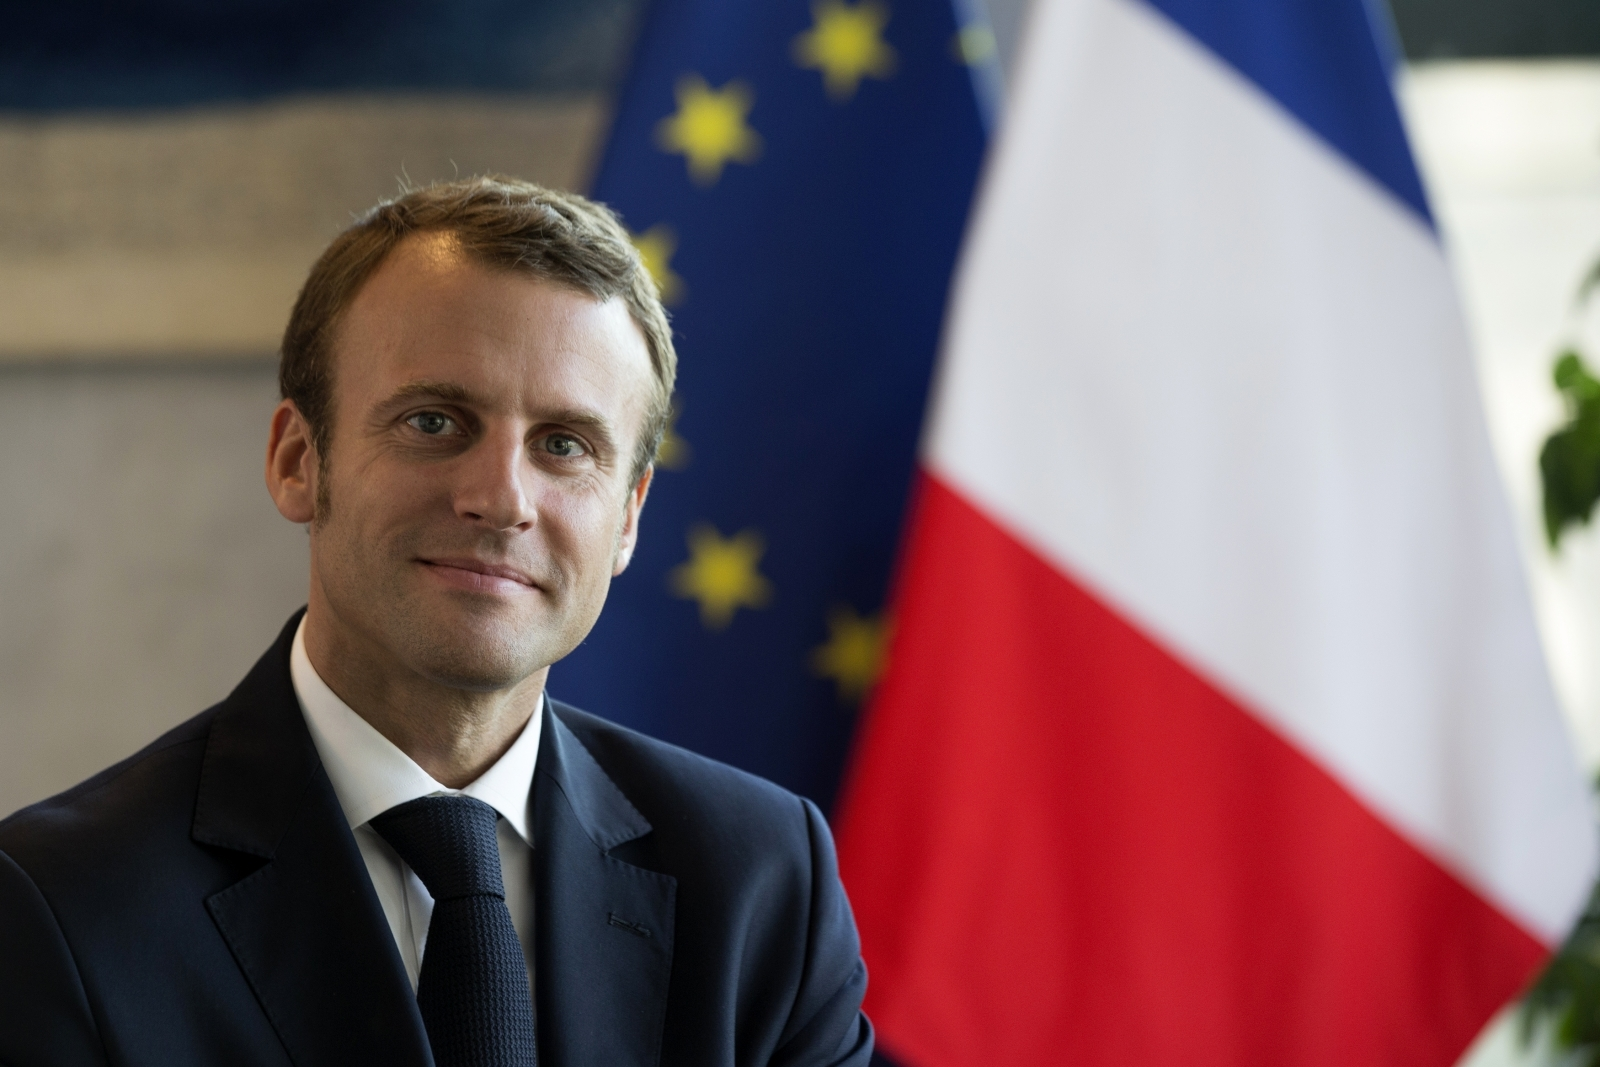 Macron New French President Will Fight Forces Of Division